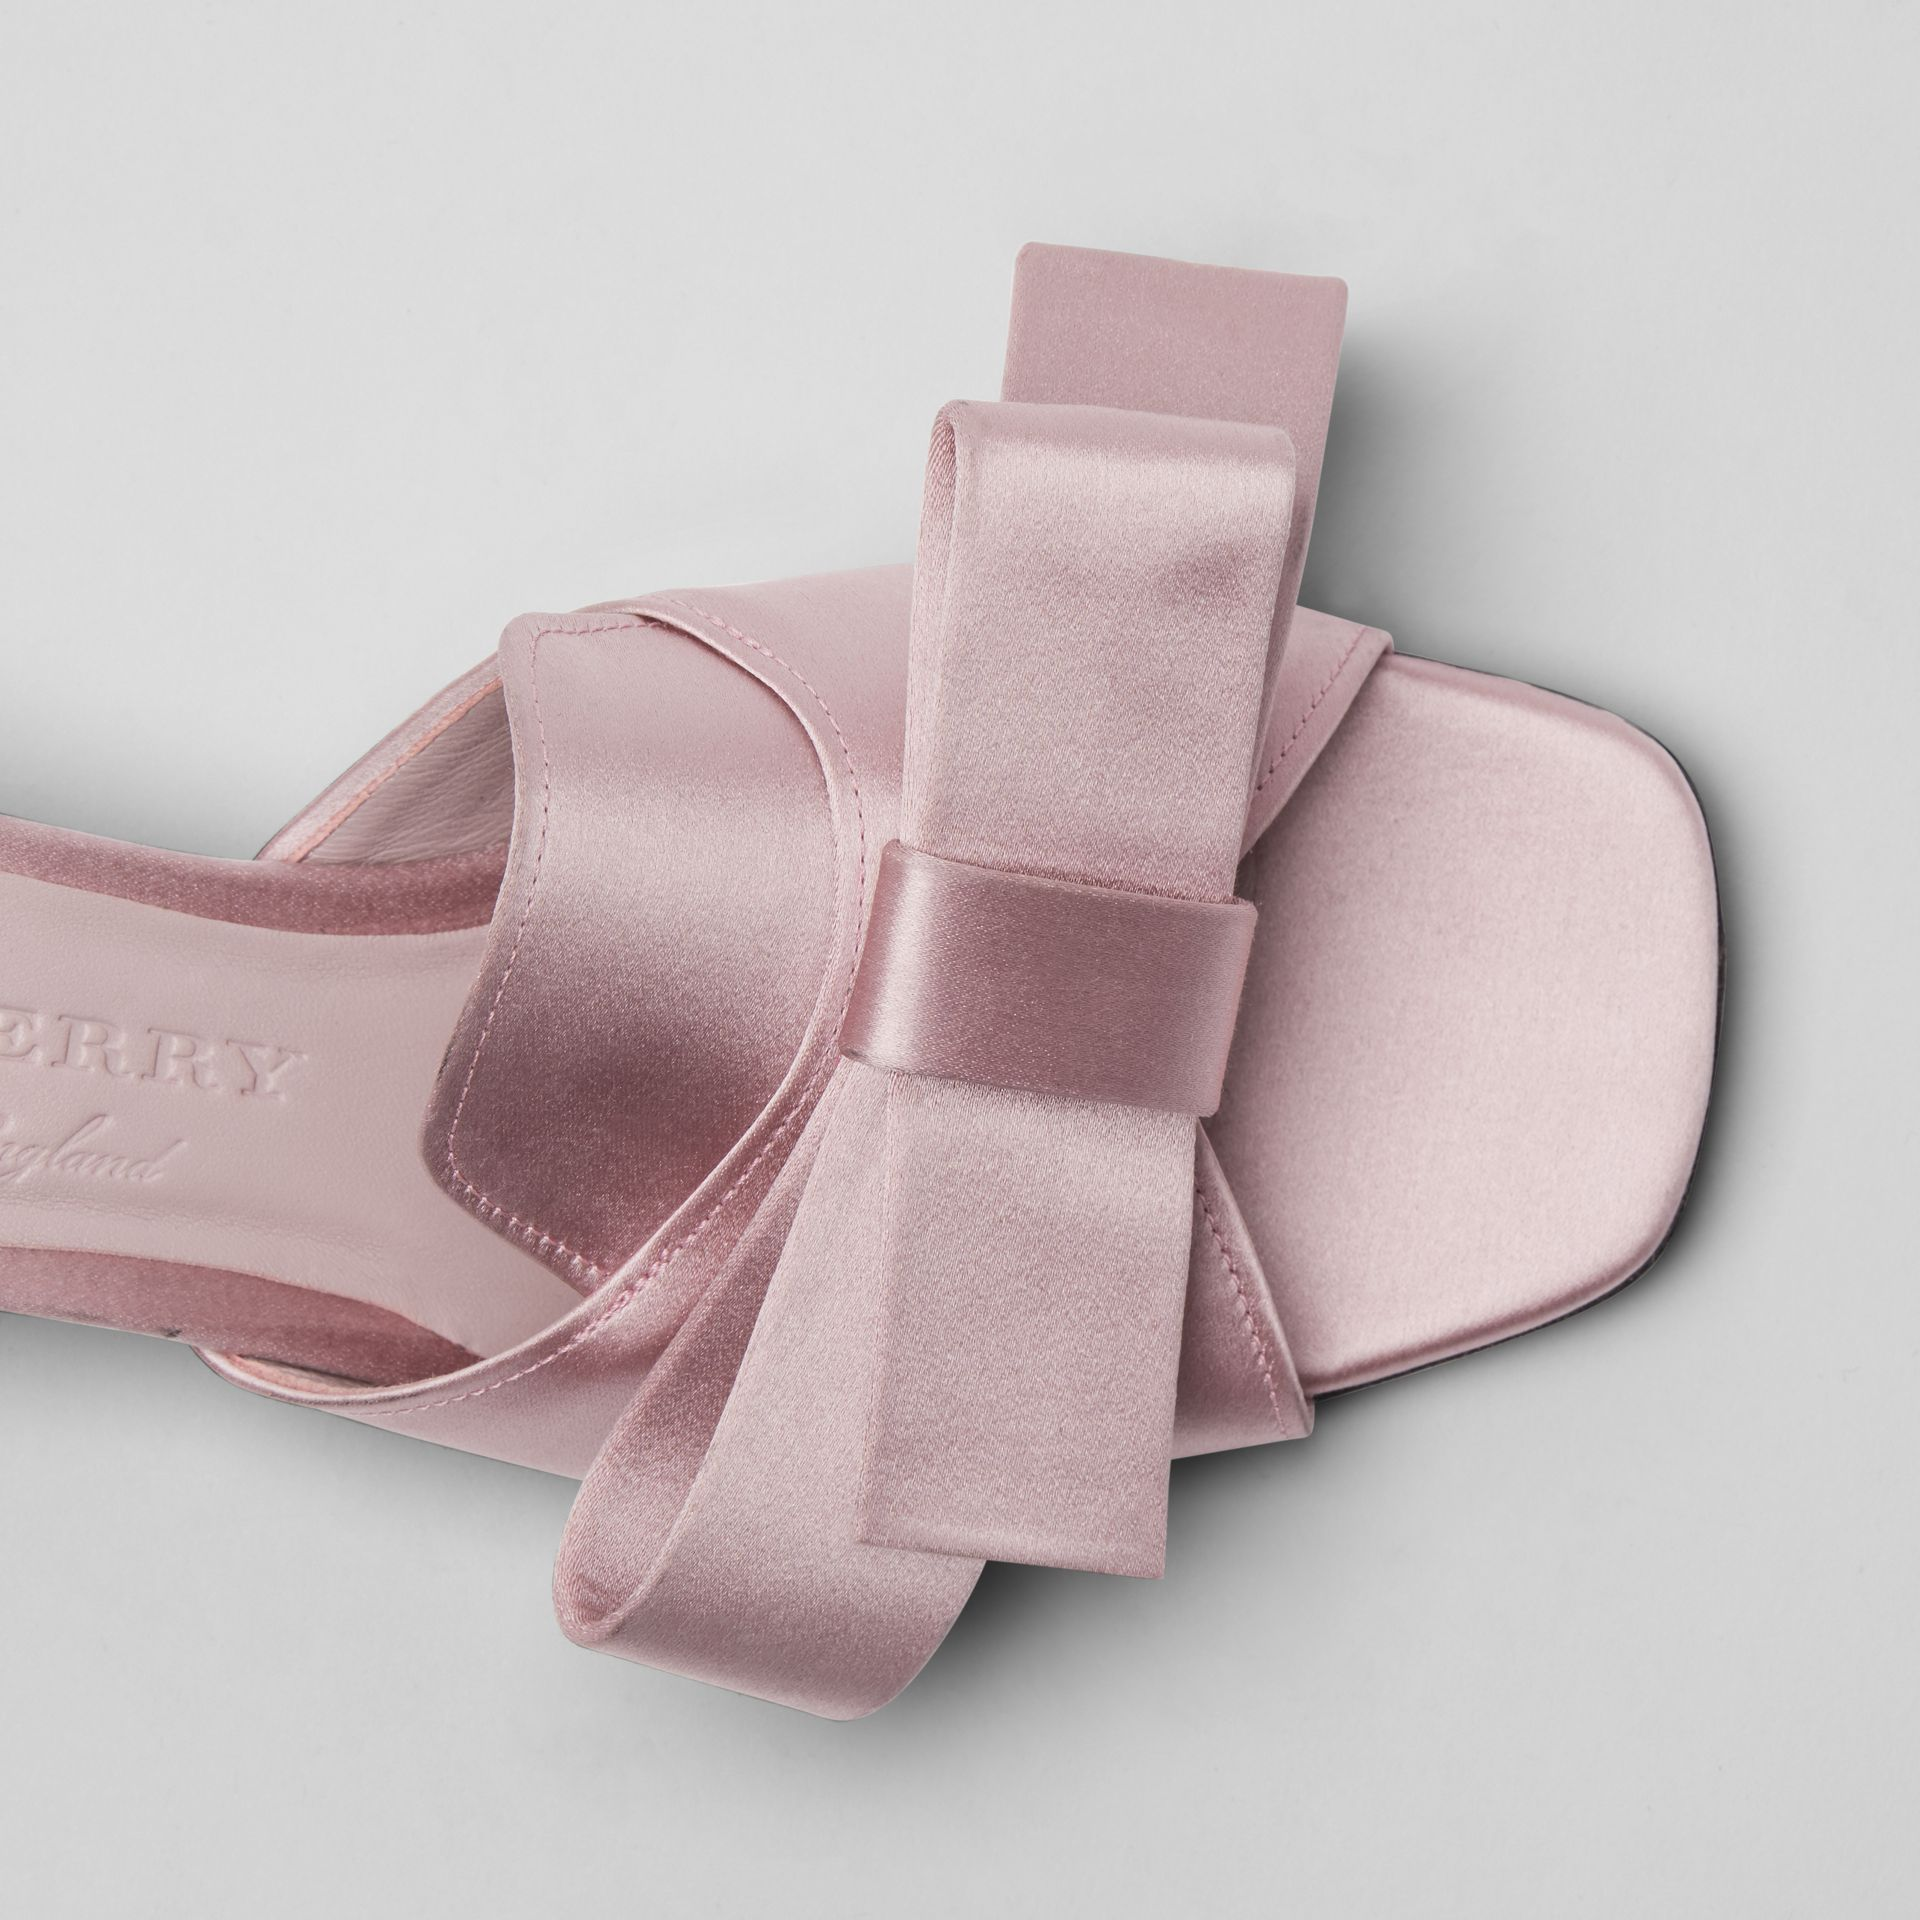 Bow Detail Satin Block-heel Mules in Light Pink Melange - Women | Burberry Hong Kong - gallery image 1